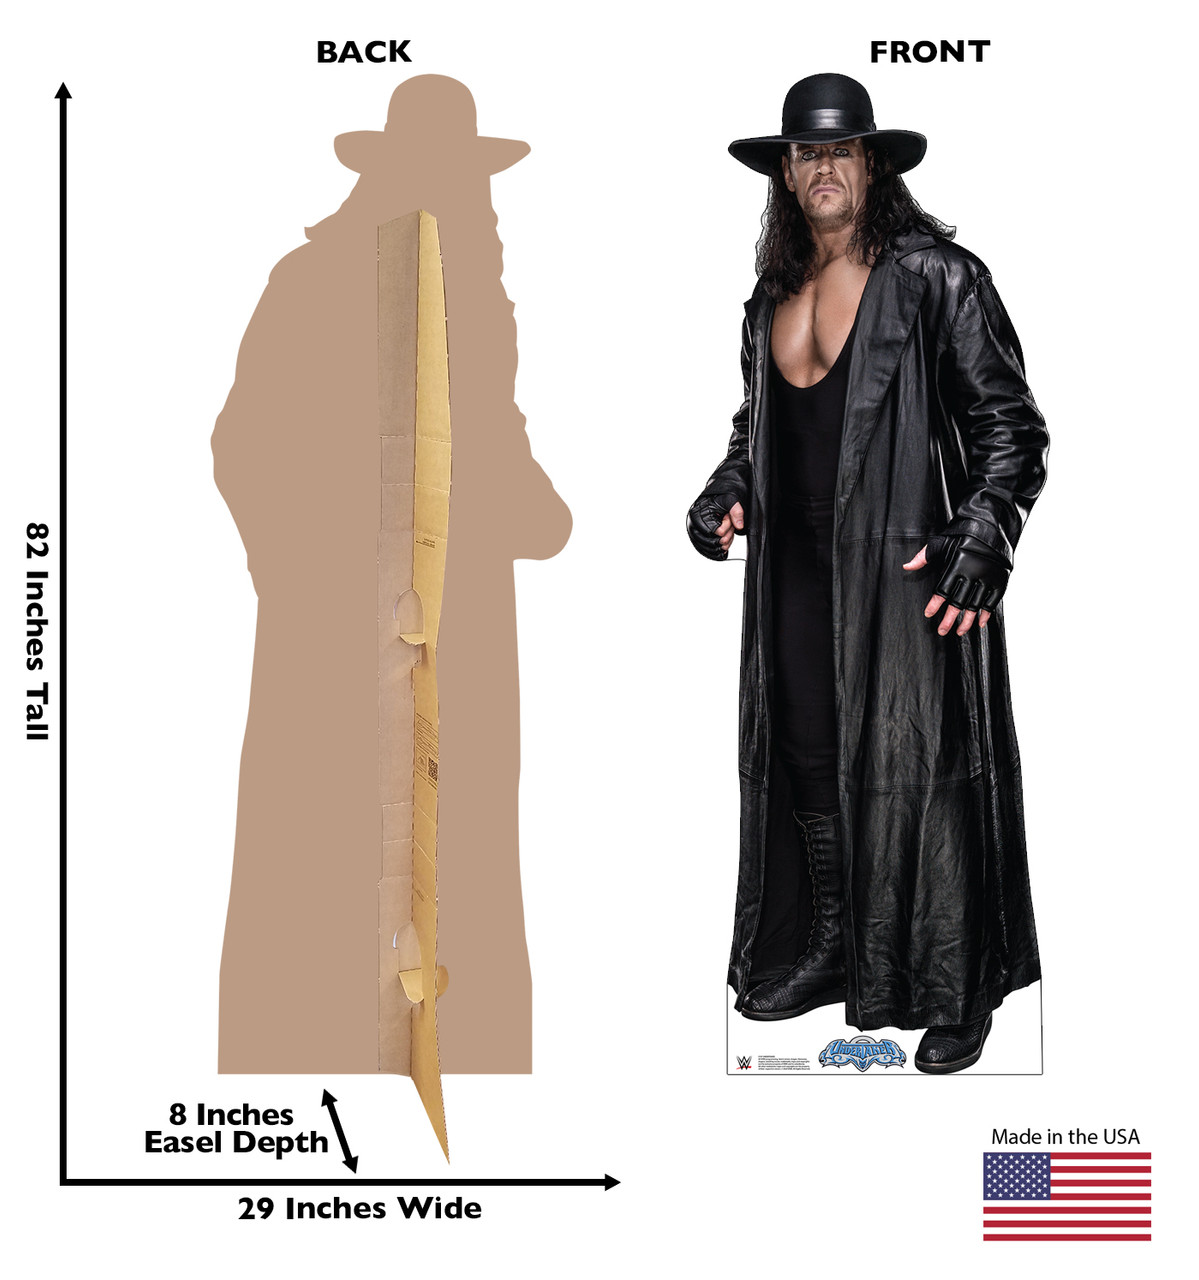 Life-size cardboard standee of the Undertaker from WWE with front and back dimensions.